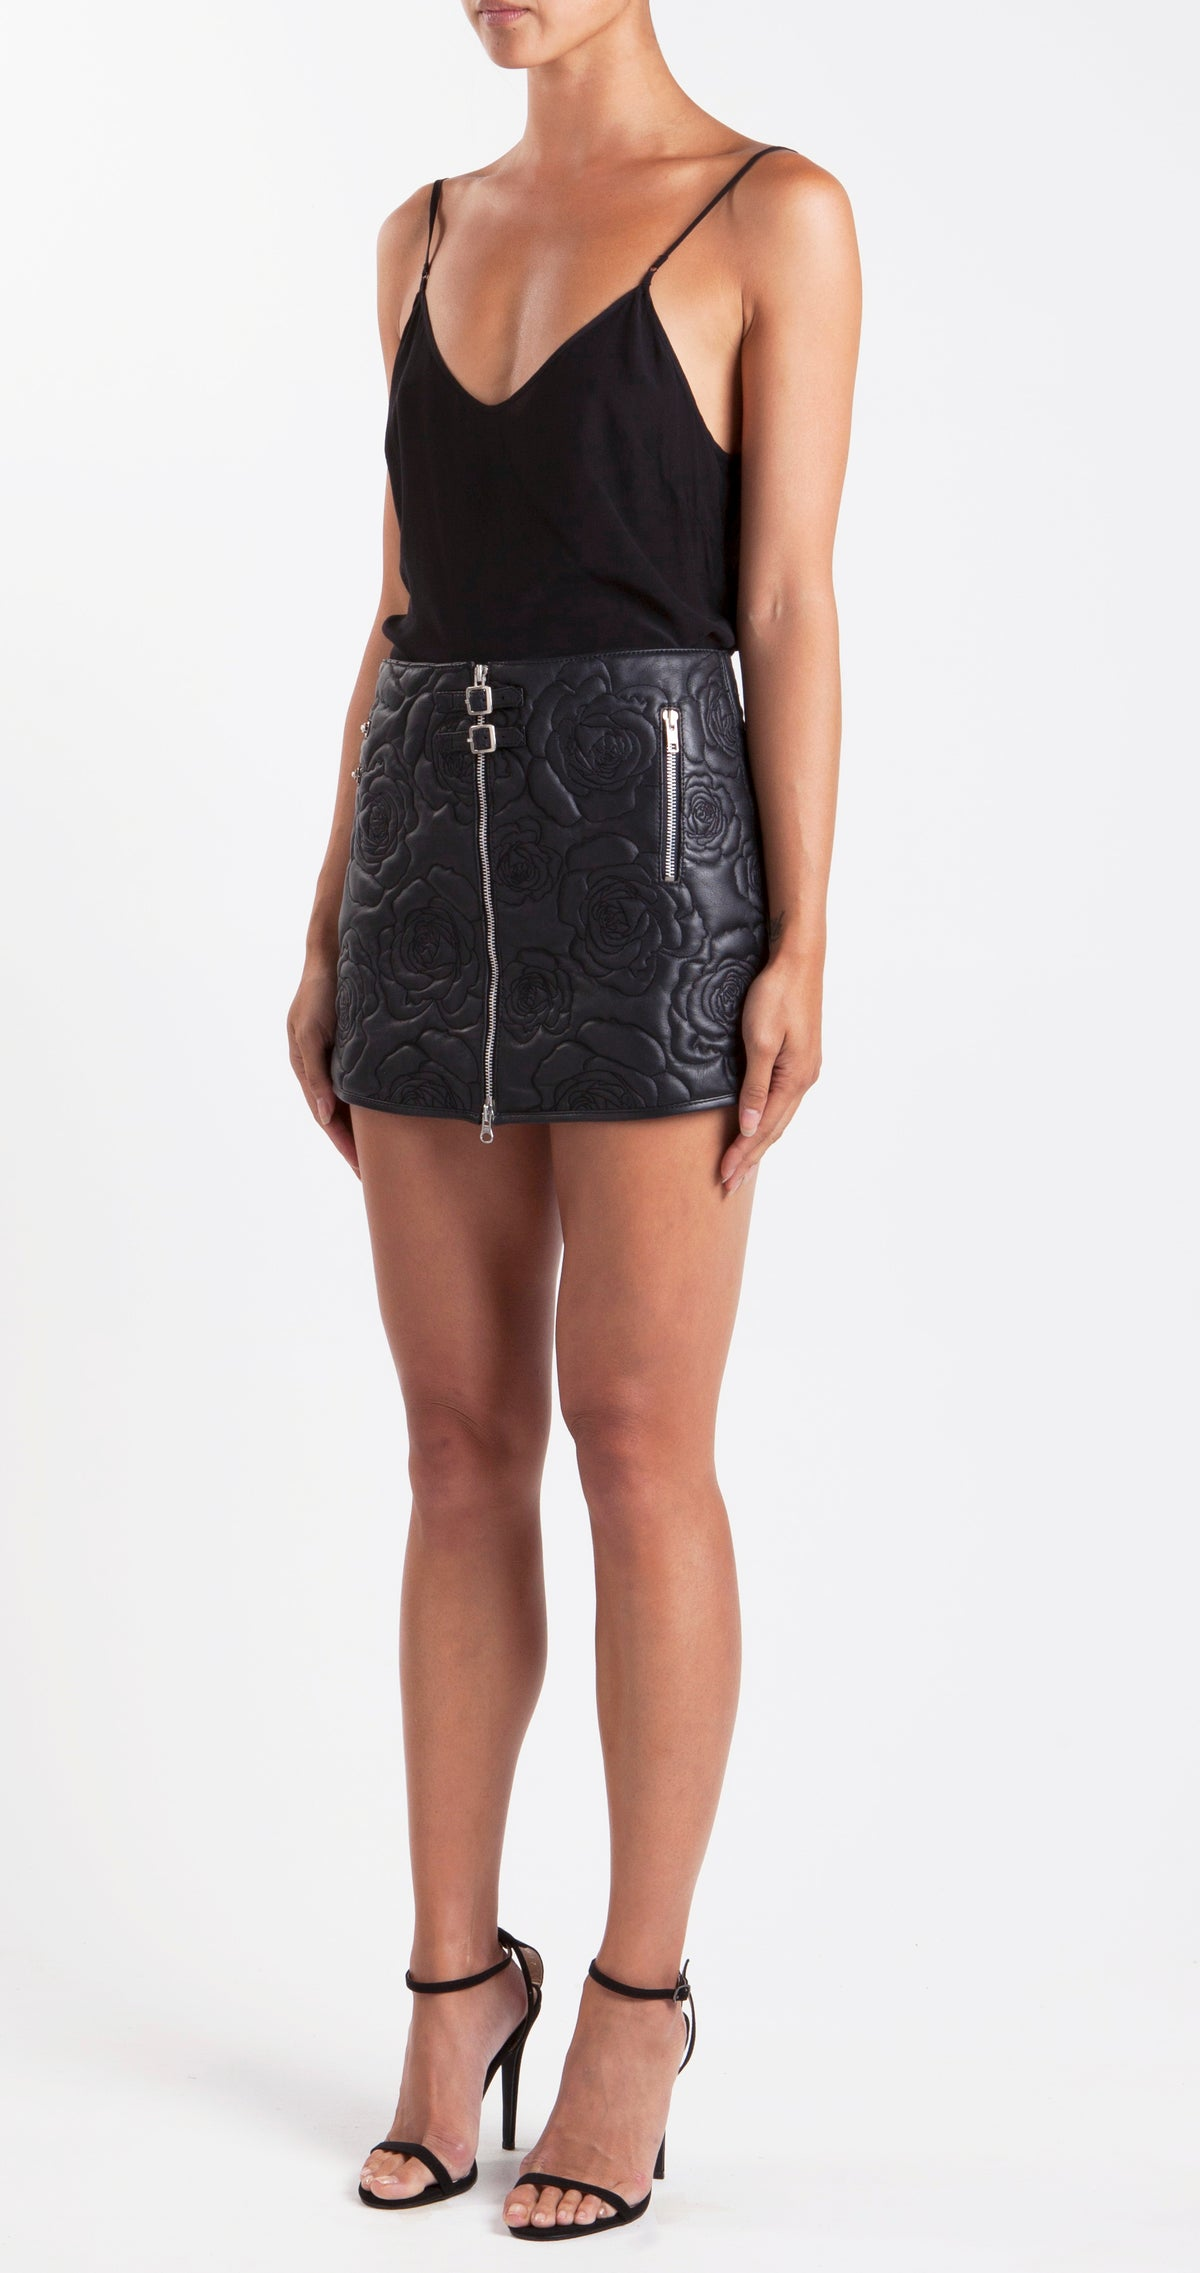 Roses In Silver Vases Embroidered Leather Skirt Side